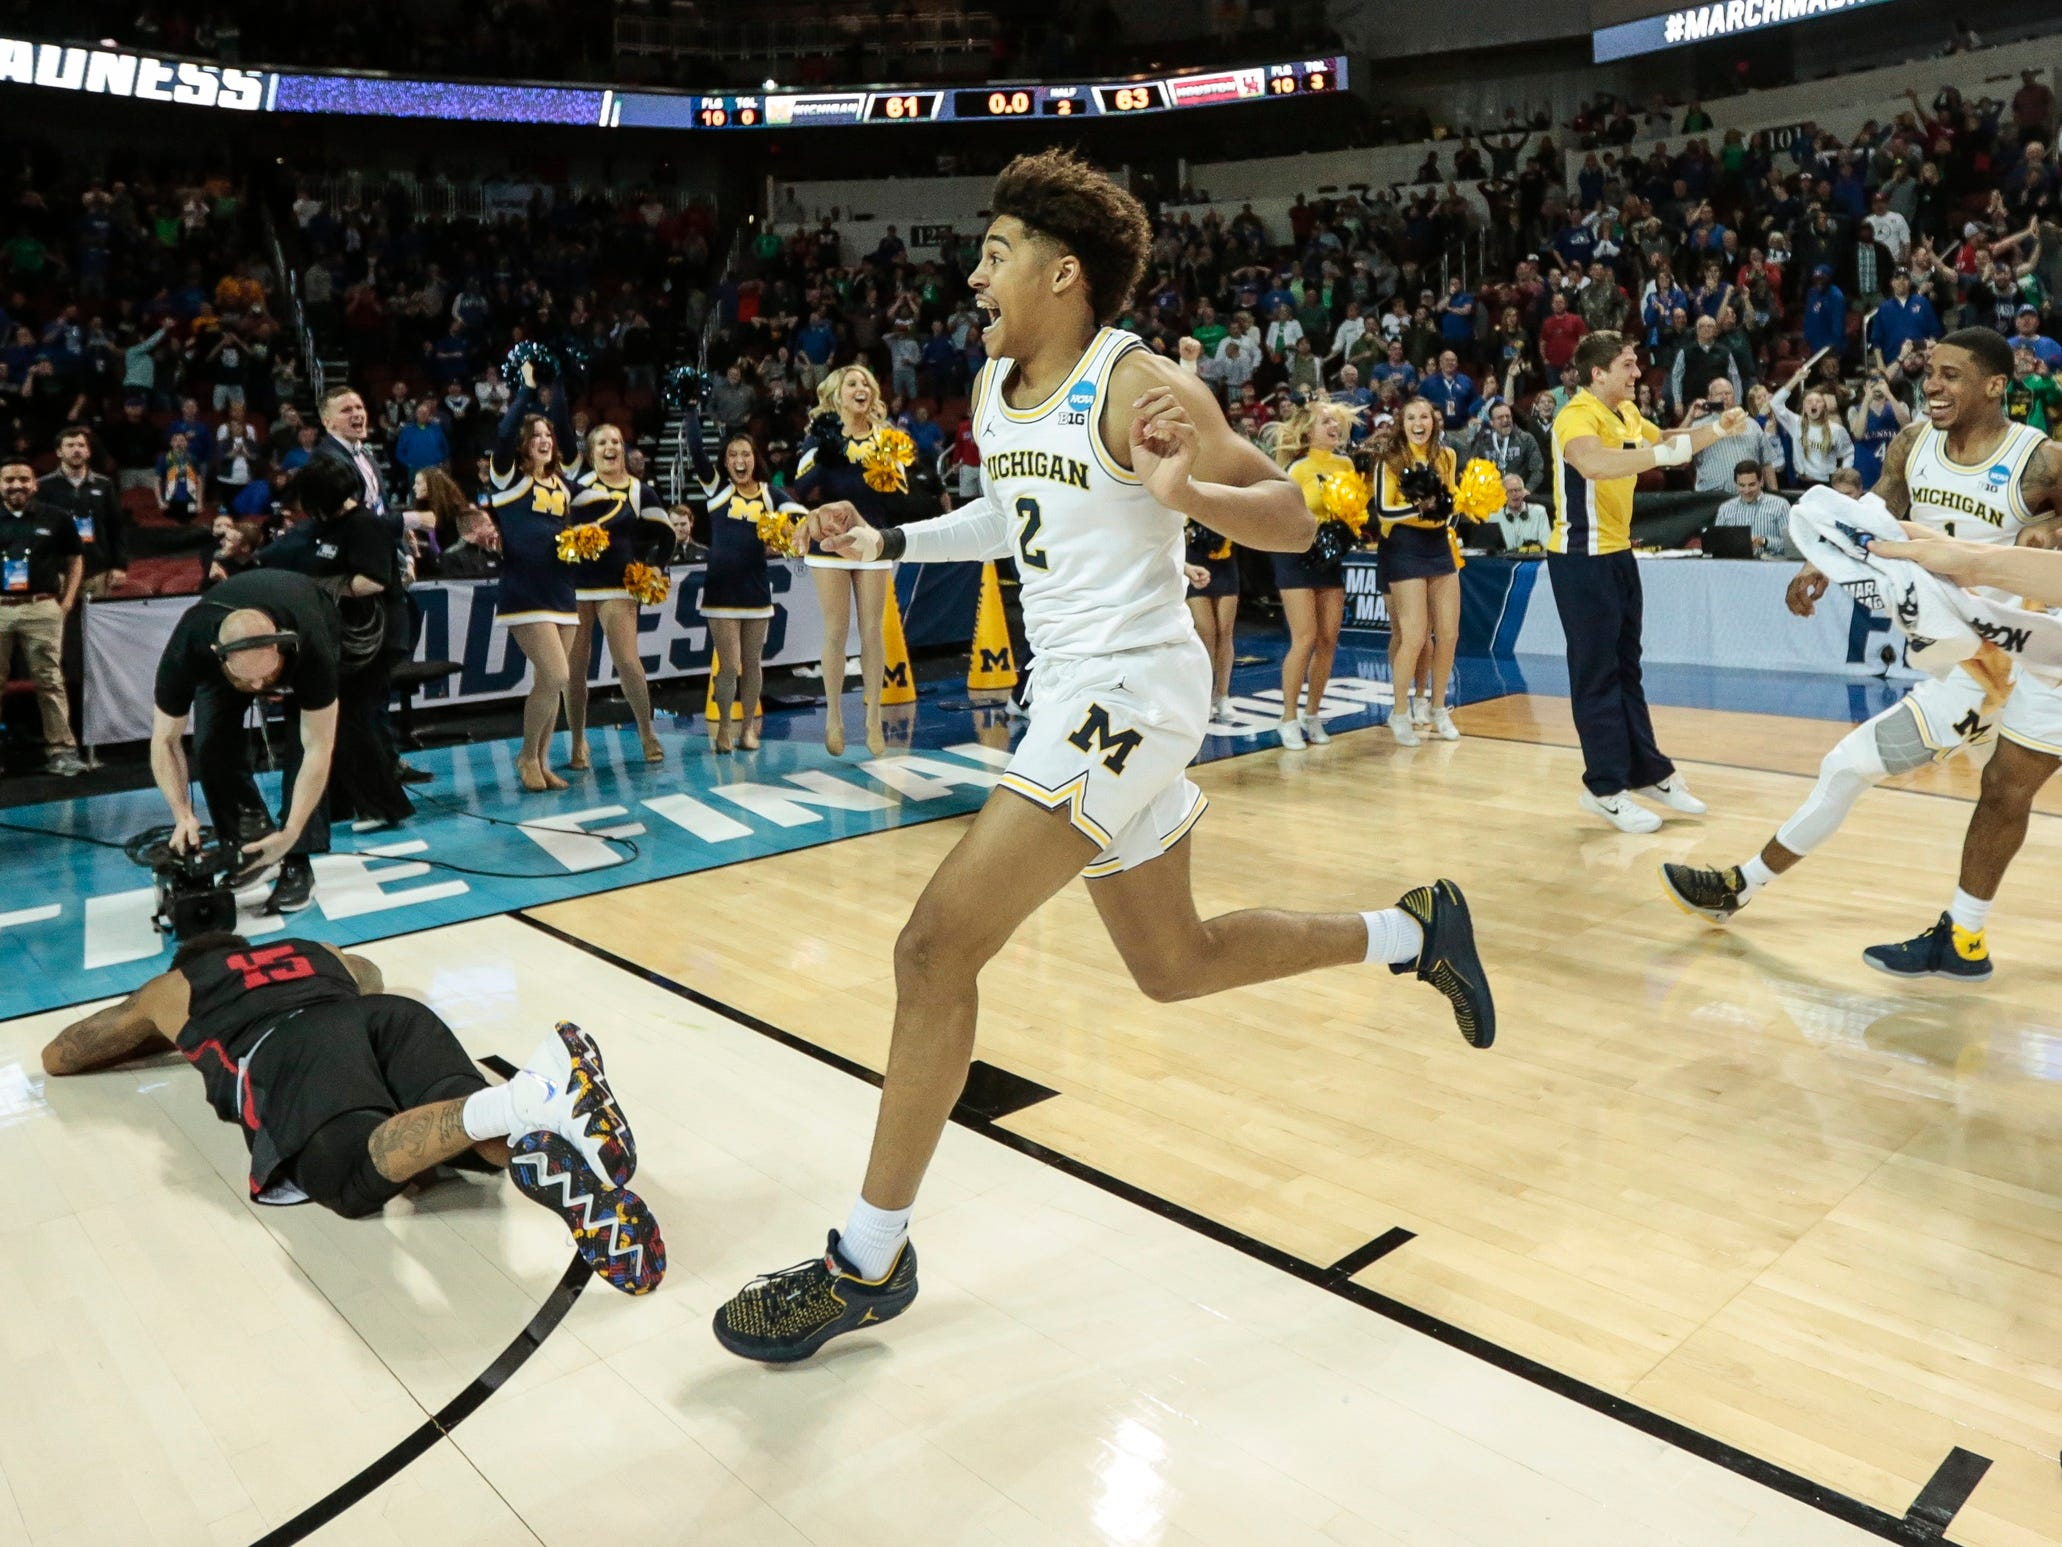 Michigan guard Jordan Poole (2) celebrates after scoring a 3-pointer to defeat Houston in the second round of the NCAA tournament at INTRUST Bank Arena in Wichita, Kan., Saturday, March 17, 2018.